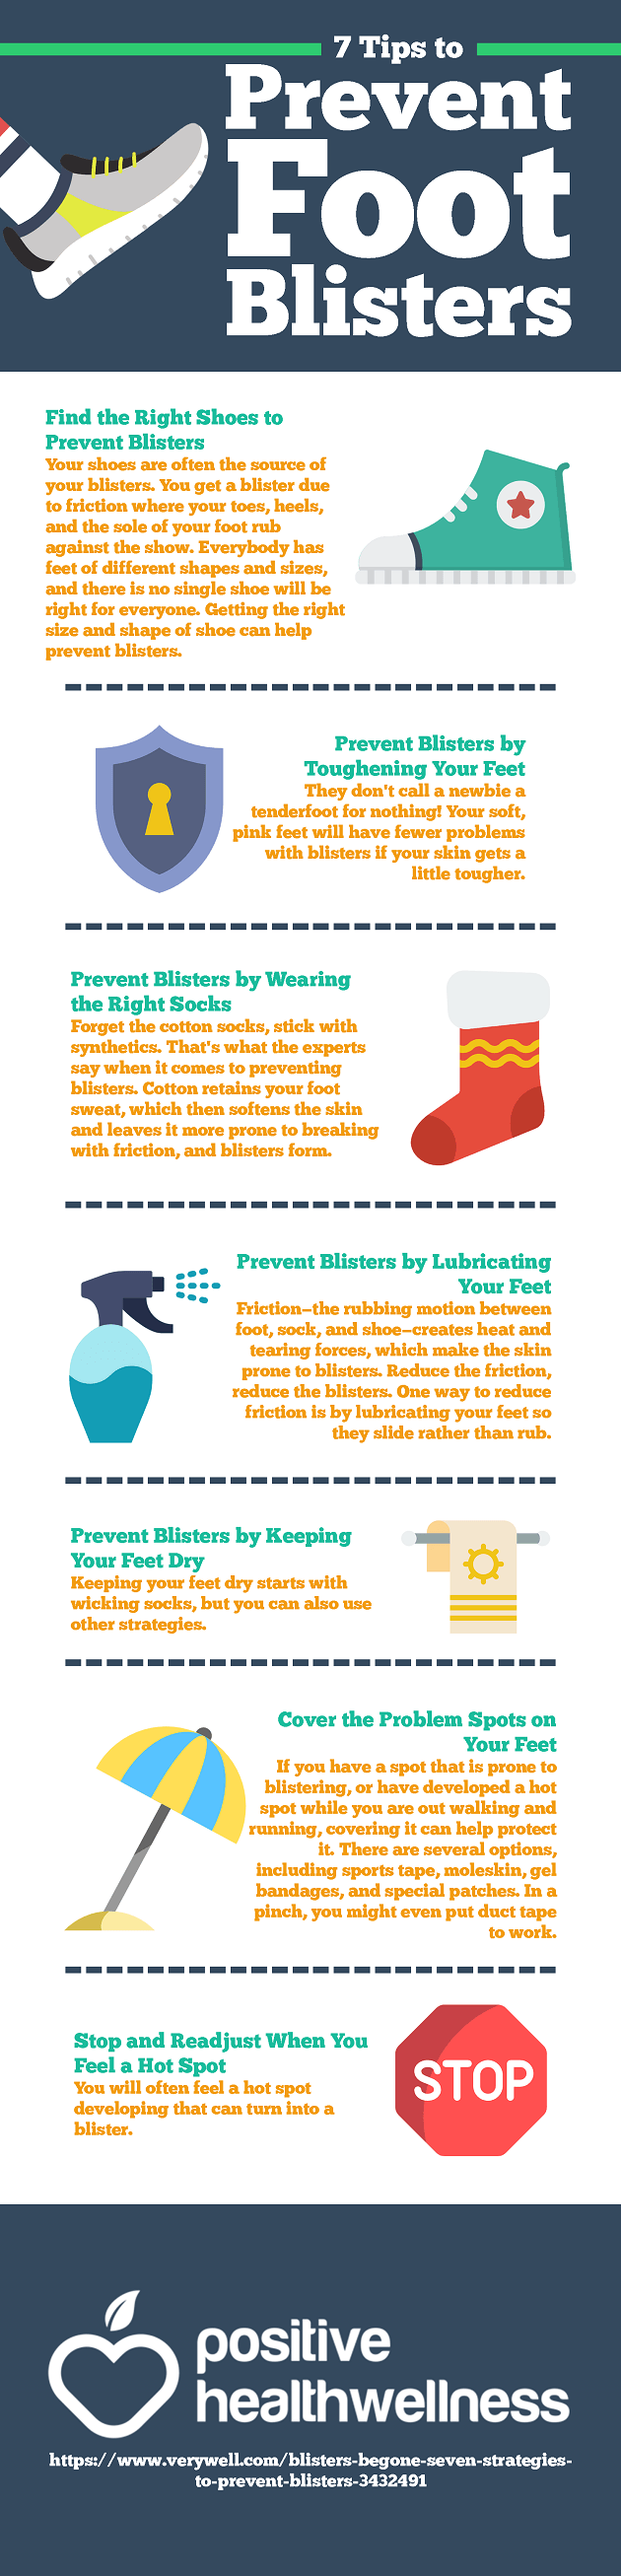 7 Tips to Prevent Foot Blisters